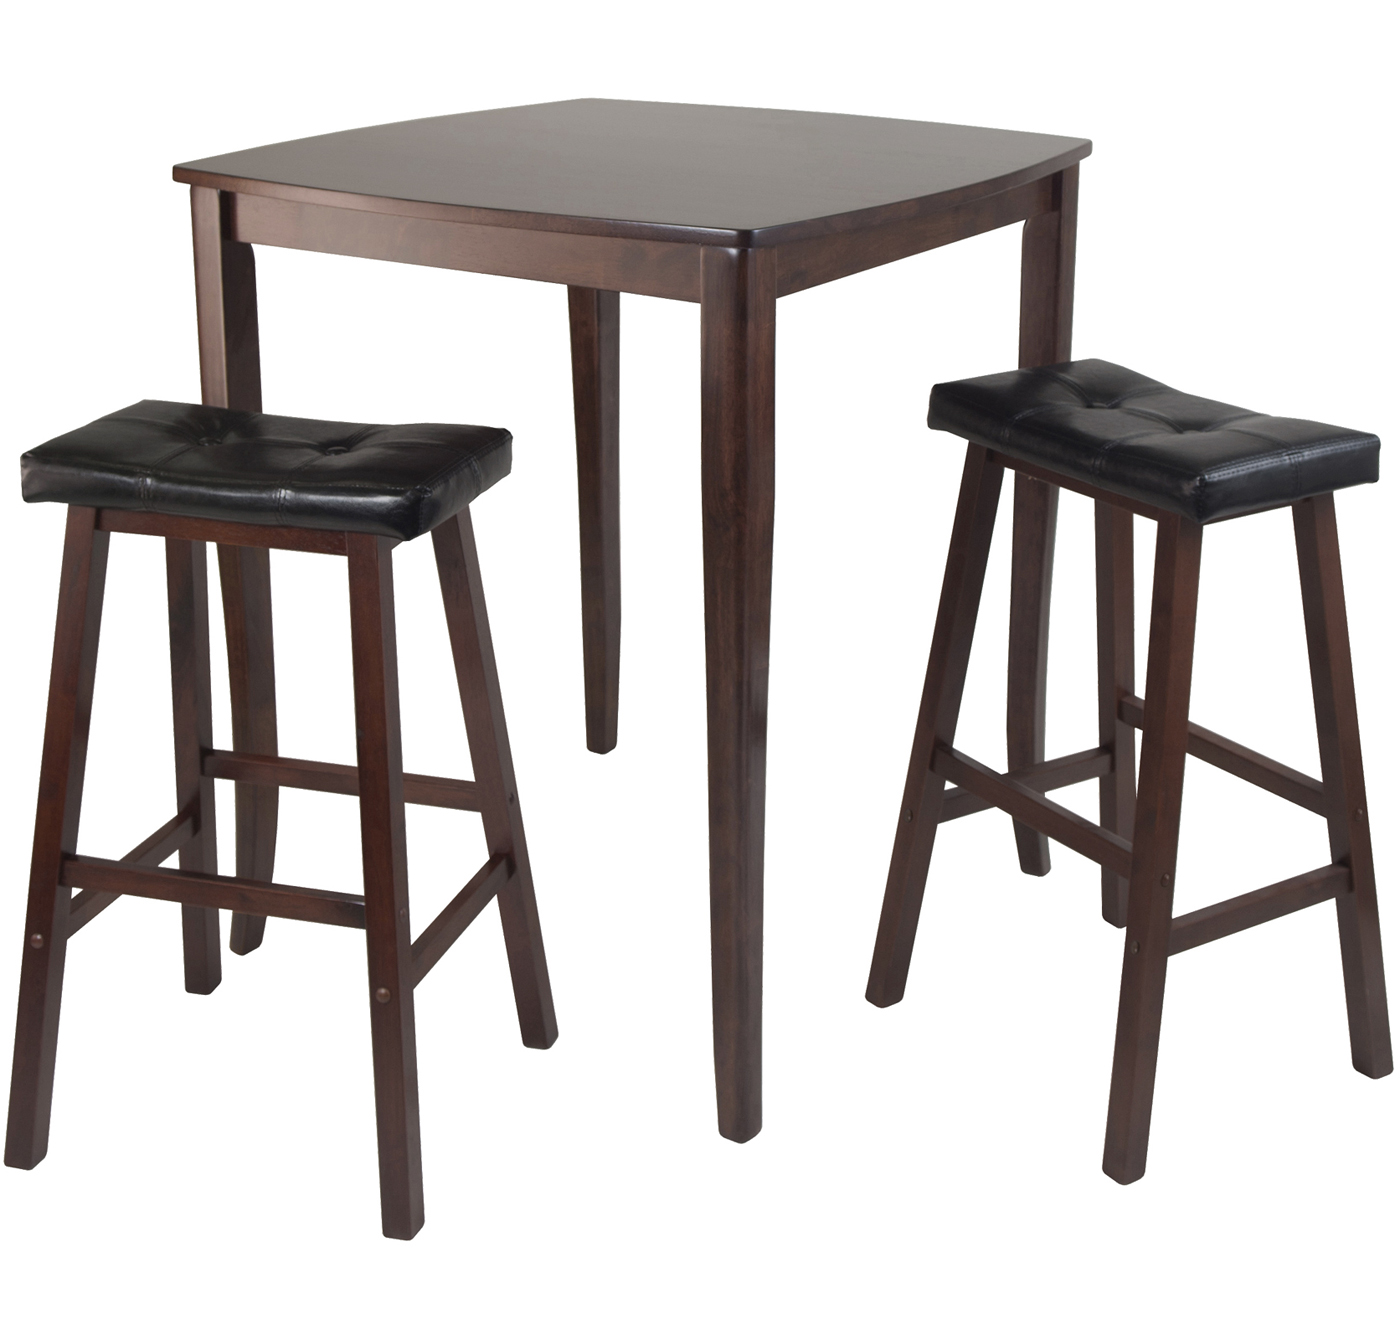 High Table with Cushion Saddle Stools (Set of 3) Price $325.99  sc 1 st  Organize-It & Bar and Pub Table Sets with Stools | Organize-It